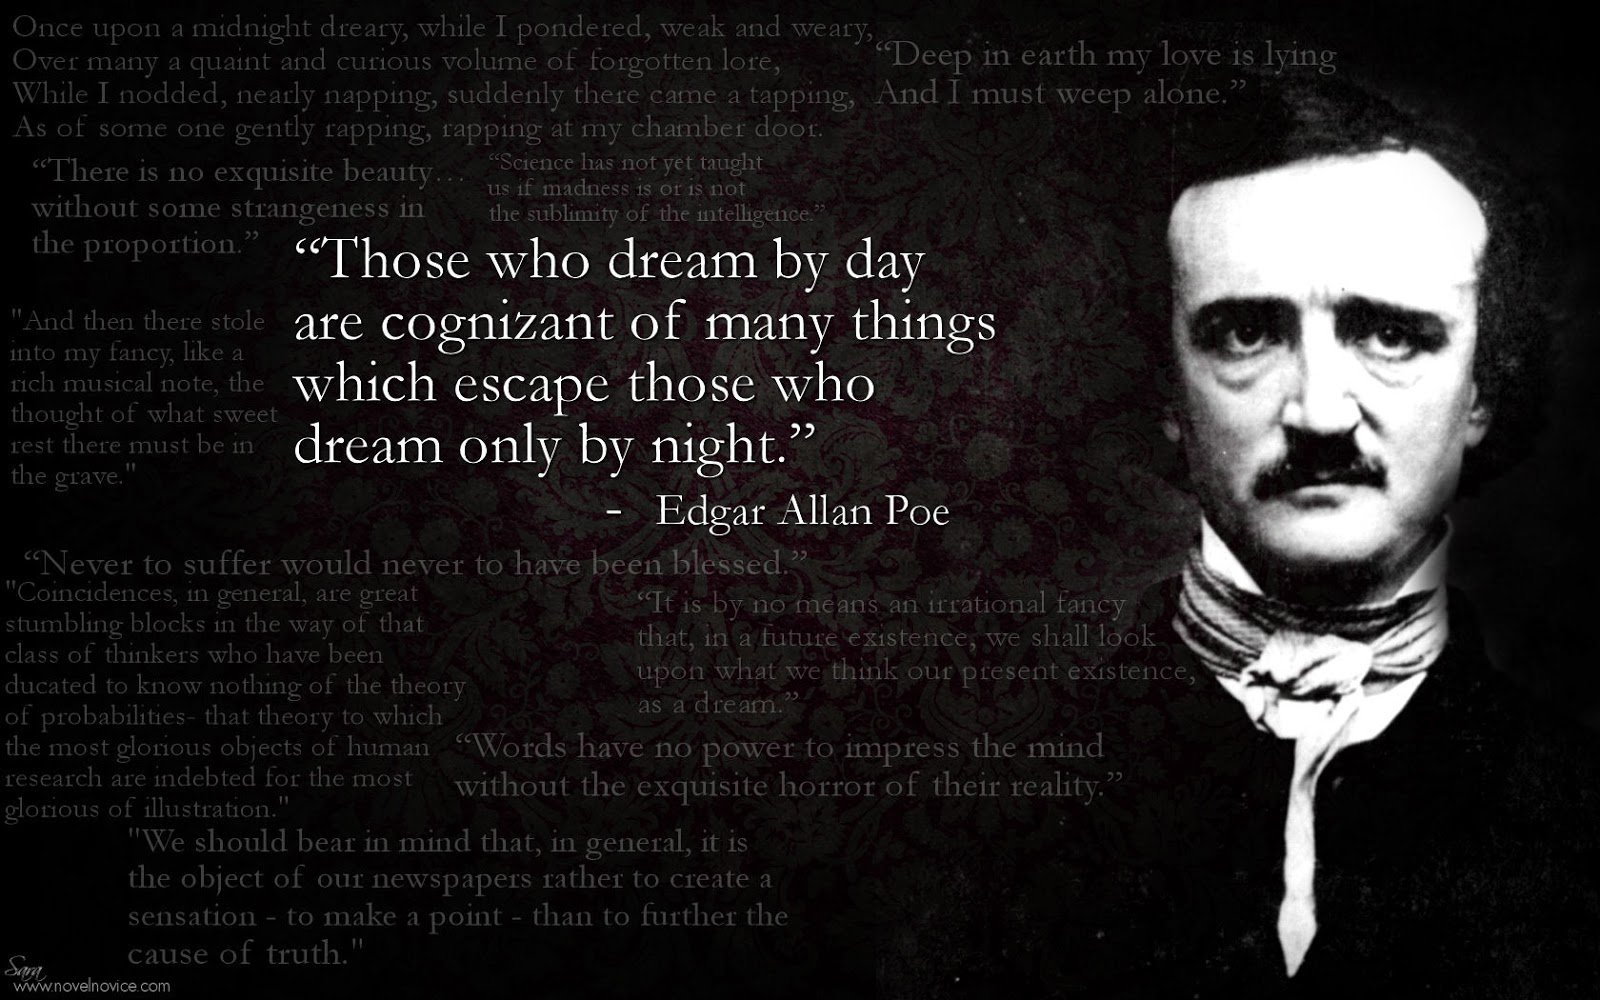 Ms wallpapers gticos Relatos de Edgar Allan Poe Edgar Allan Poe 1600x1000